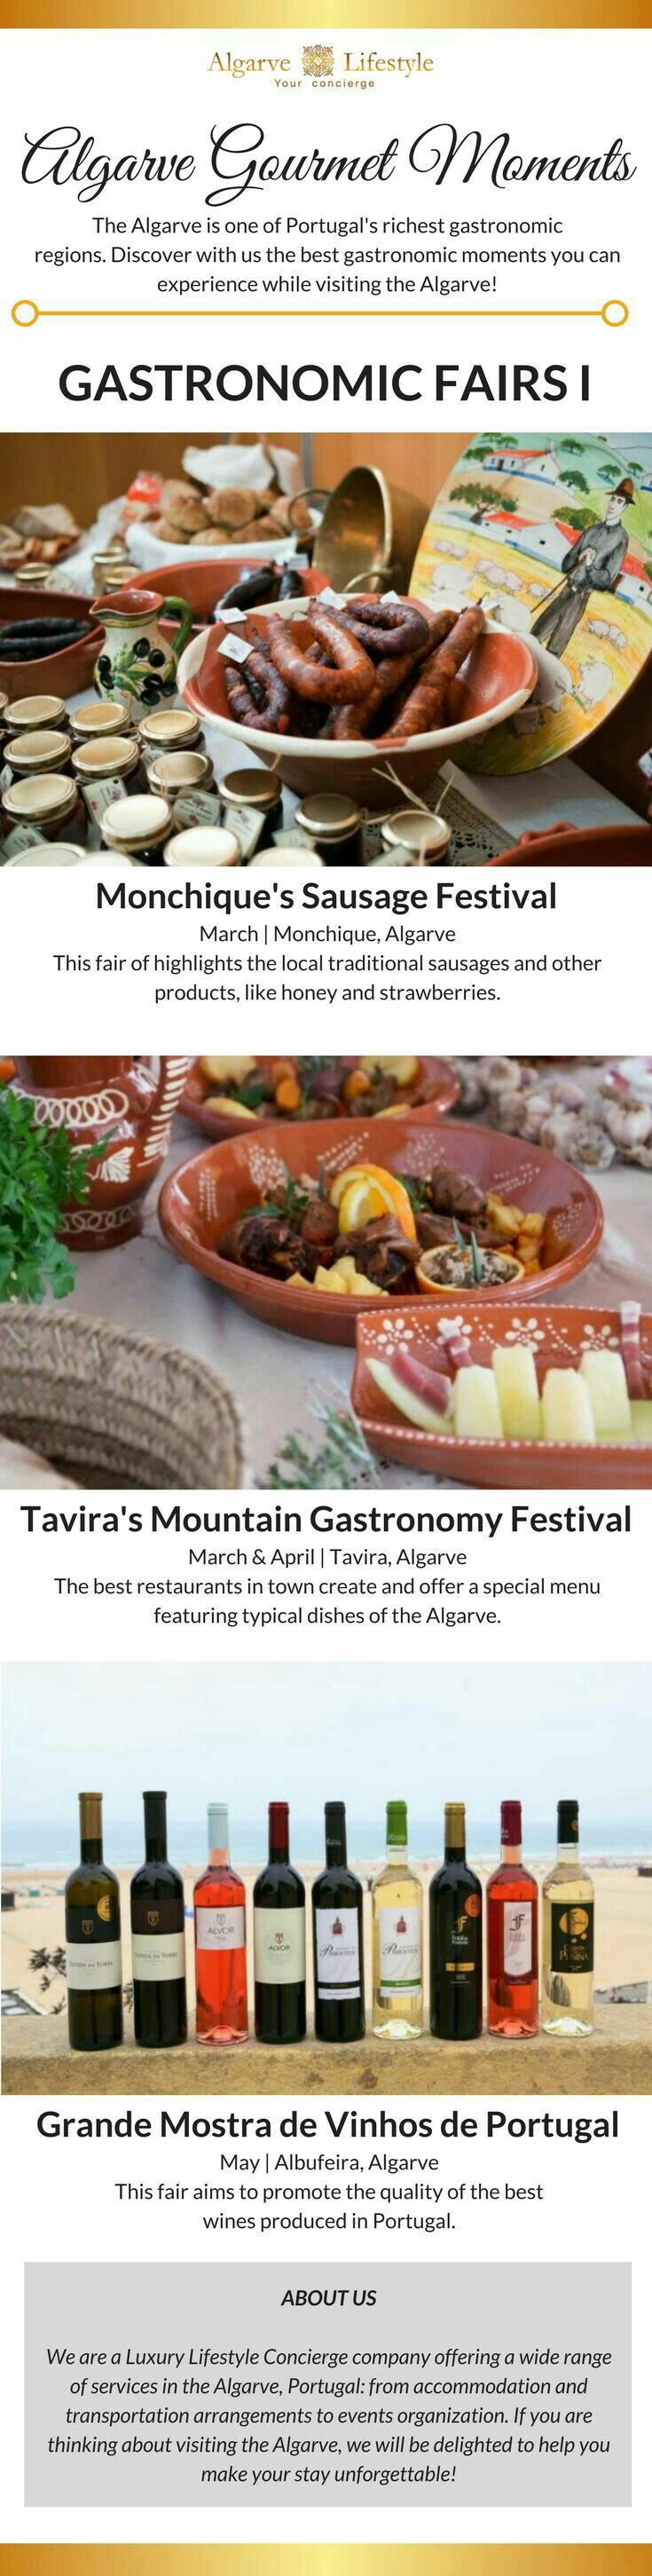 Gastronomic Fairs in Portugal